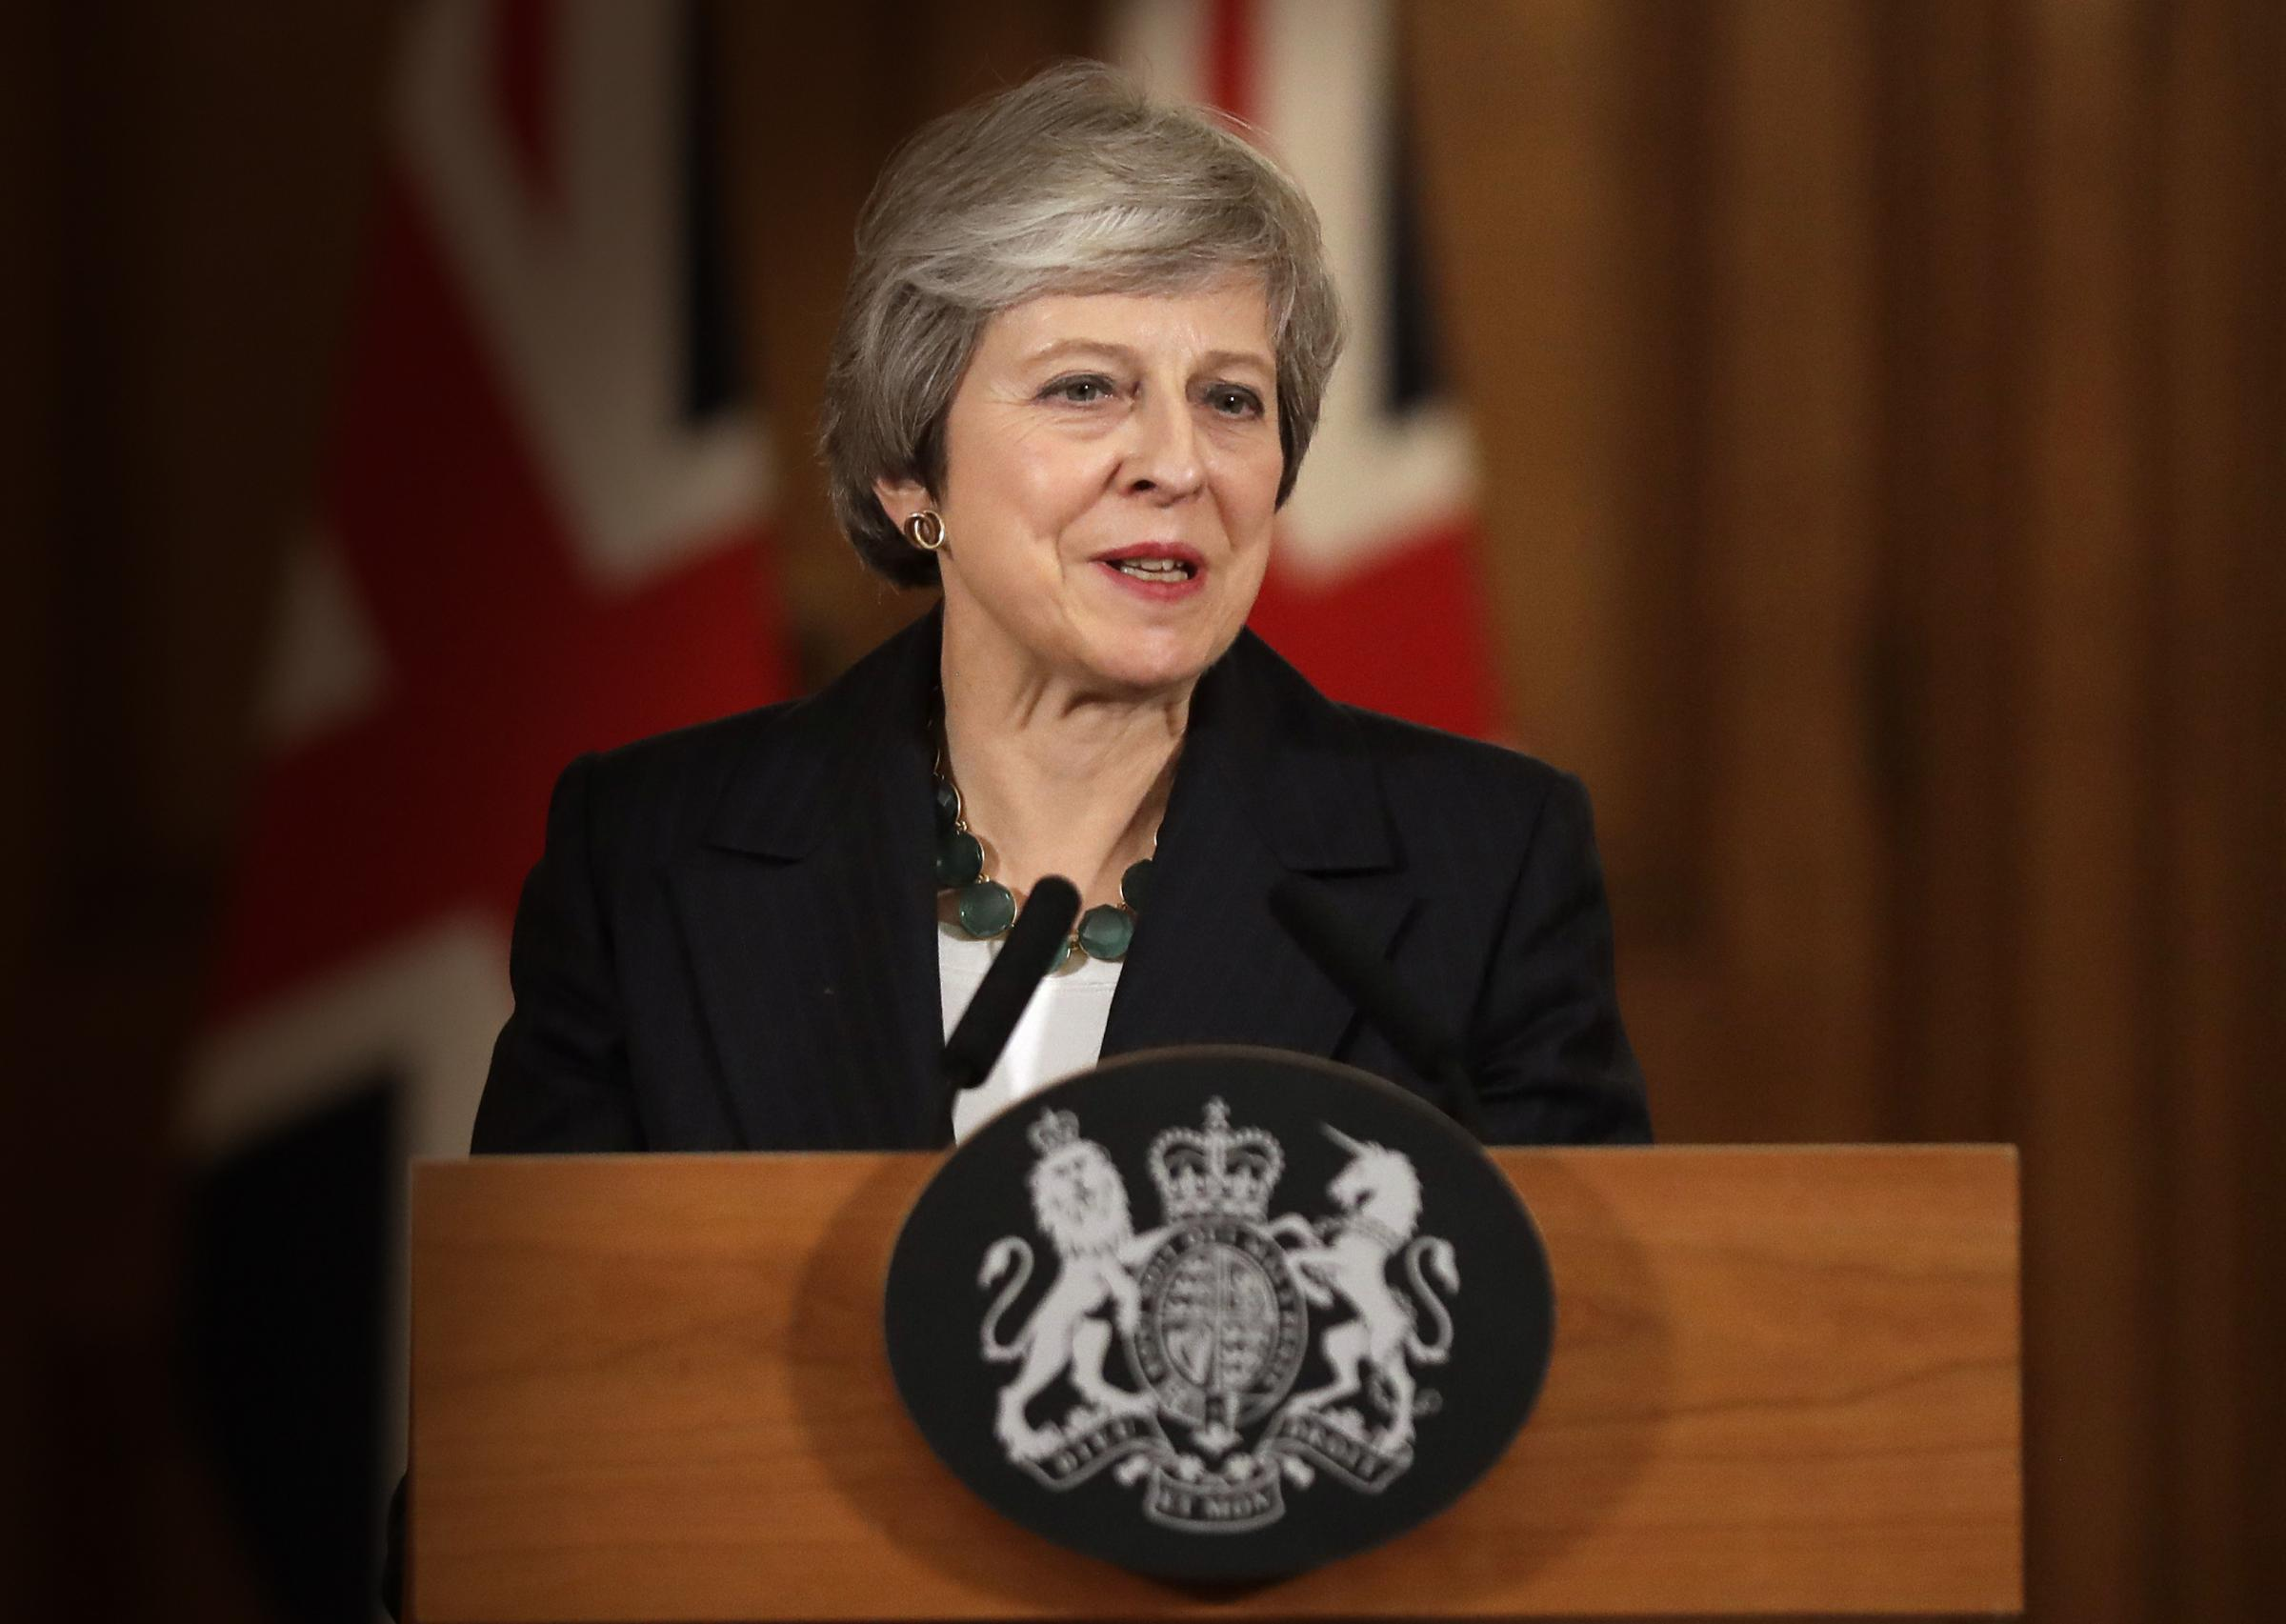 Prime Minister Theresa May answers questions during Thursday's press conference.